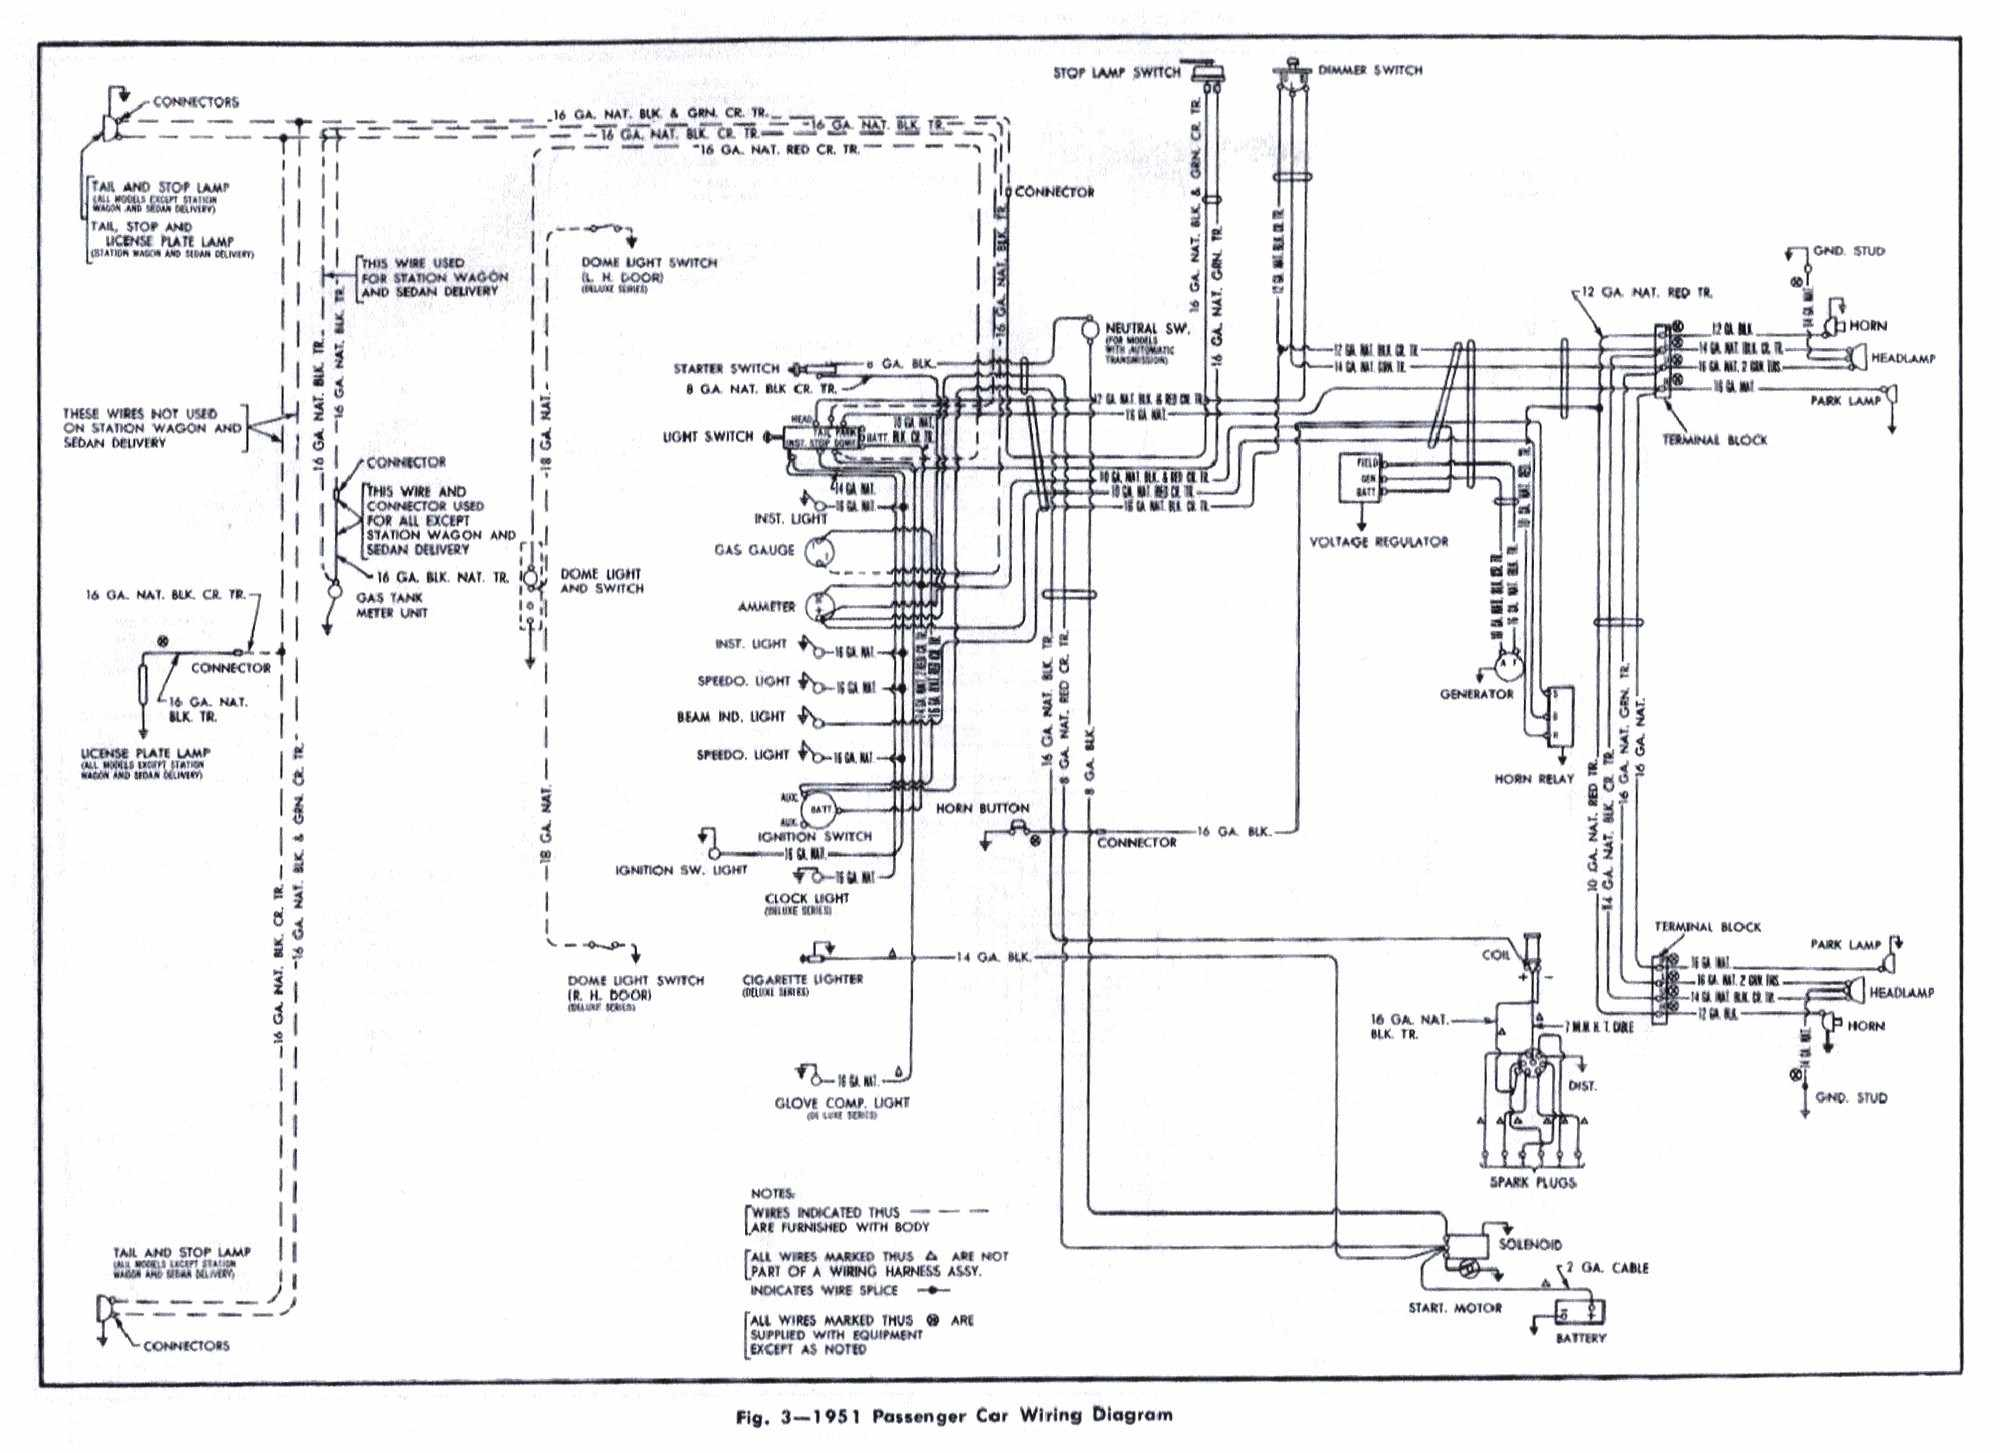 Starter Wiring Diagram Chevy 350 Sbc Hei Alternator Gm Solenoid besides Chevrolet Aveo Mk1 2002 2011 Fuse Box Diagram likewise Ford Thunderbird 1958 Windows Wiring together with Diagrama Electrico De Chevy 2003 as well P0496 chevrolet. on 2005 aveo wiring diagram